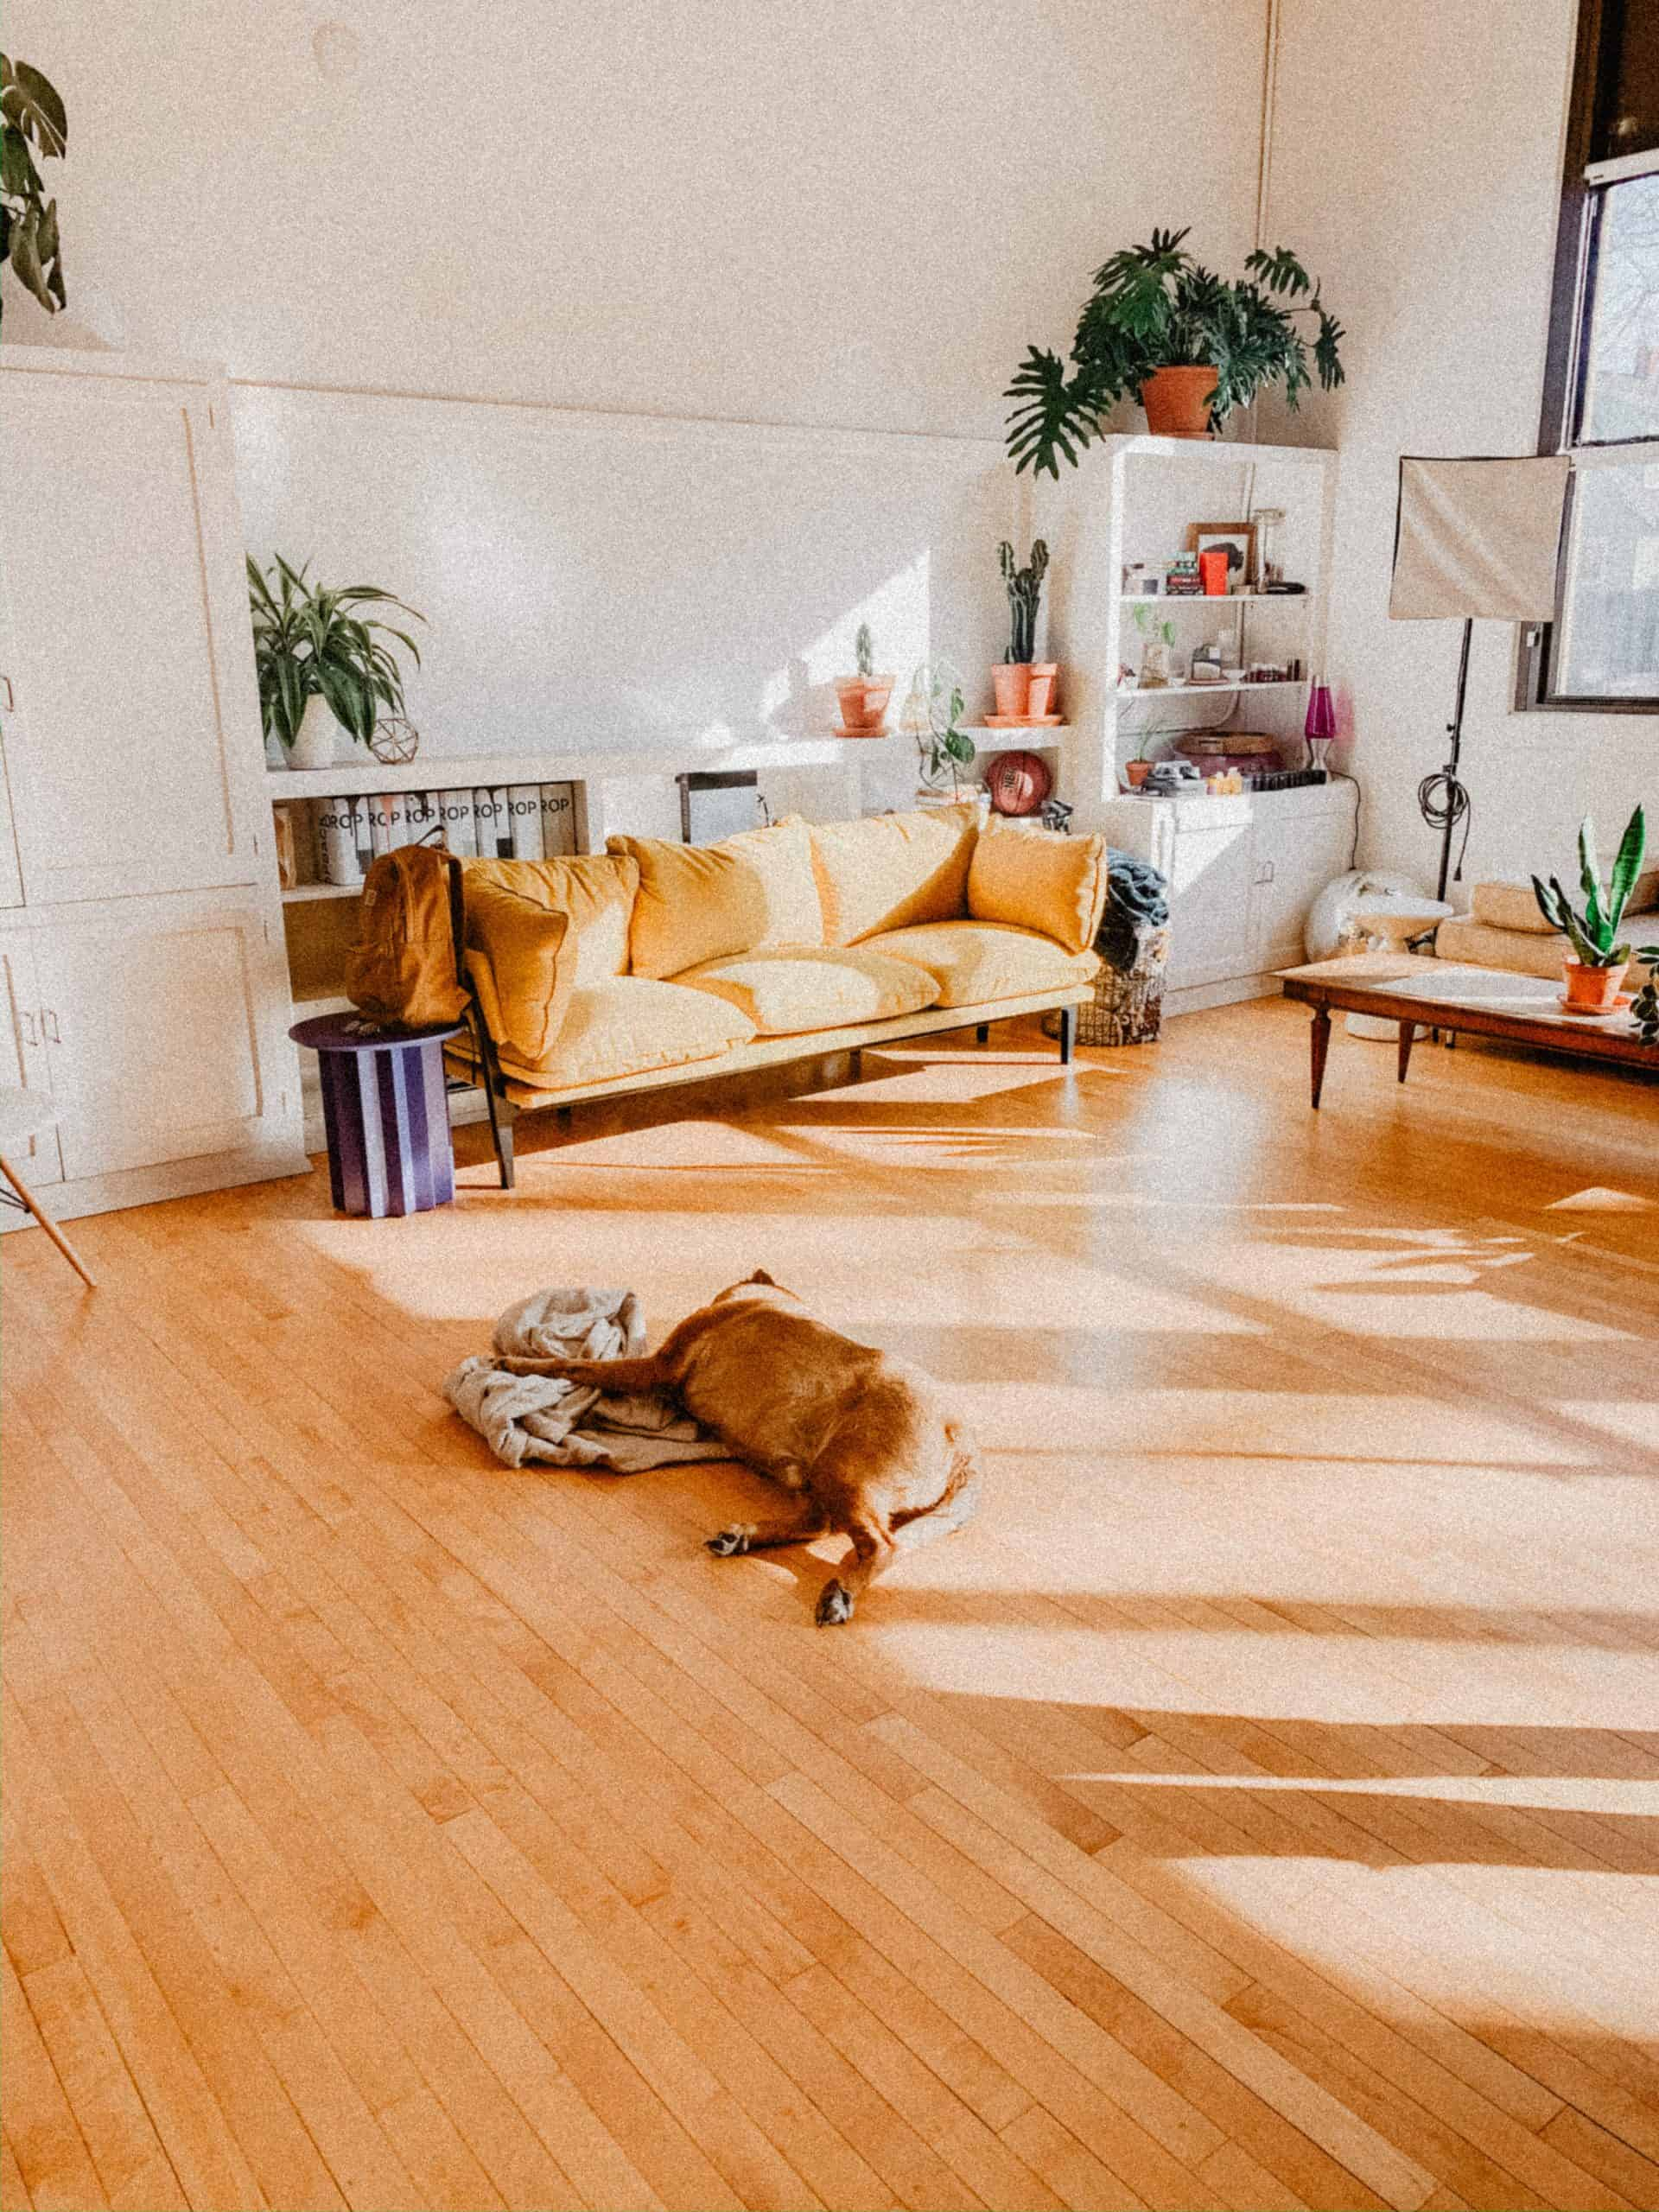 Vinyl vs Laminate floor - What you need to know